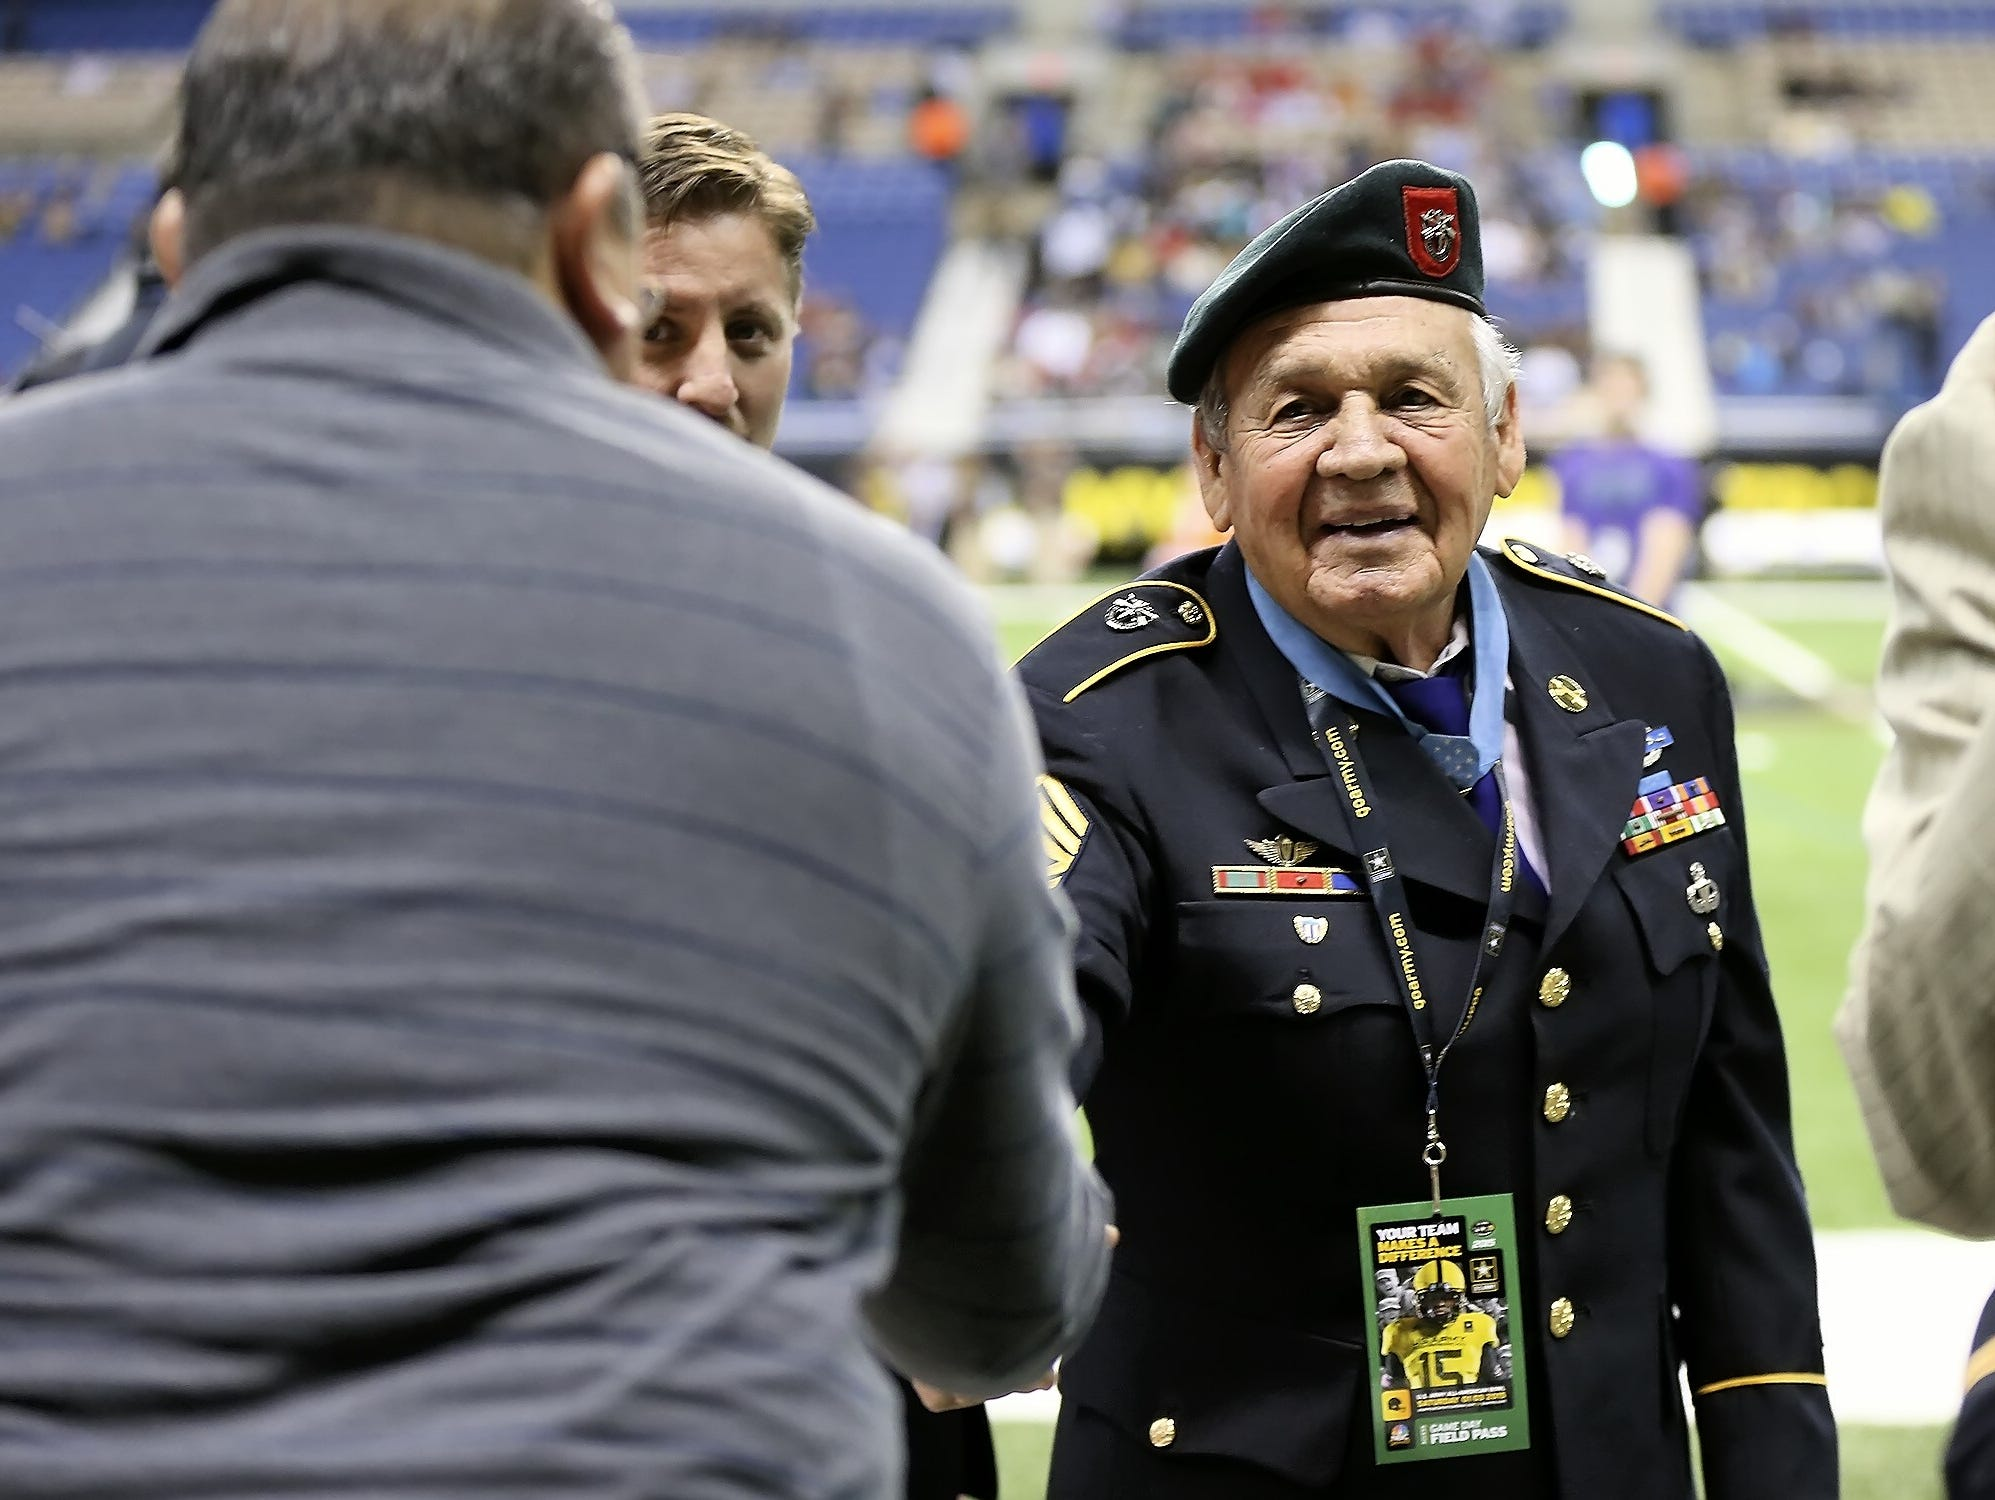 Retired Army Master Sgt. Jose Rodela, who was honored before the U.S. Army All-America Bowl on Saturday, has lived in San Antonio since 1975.